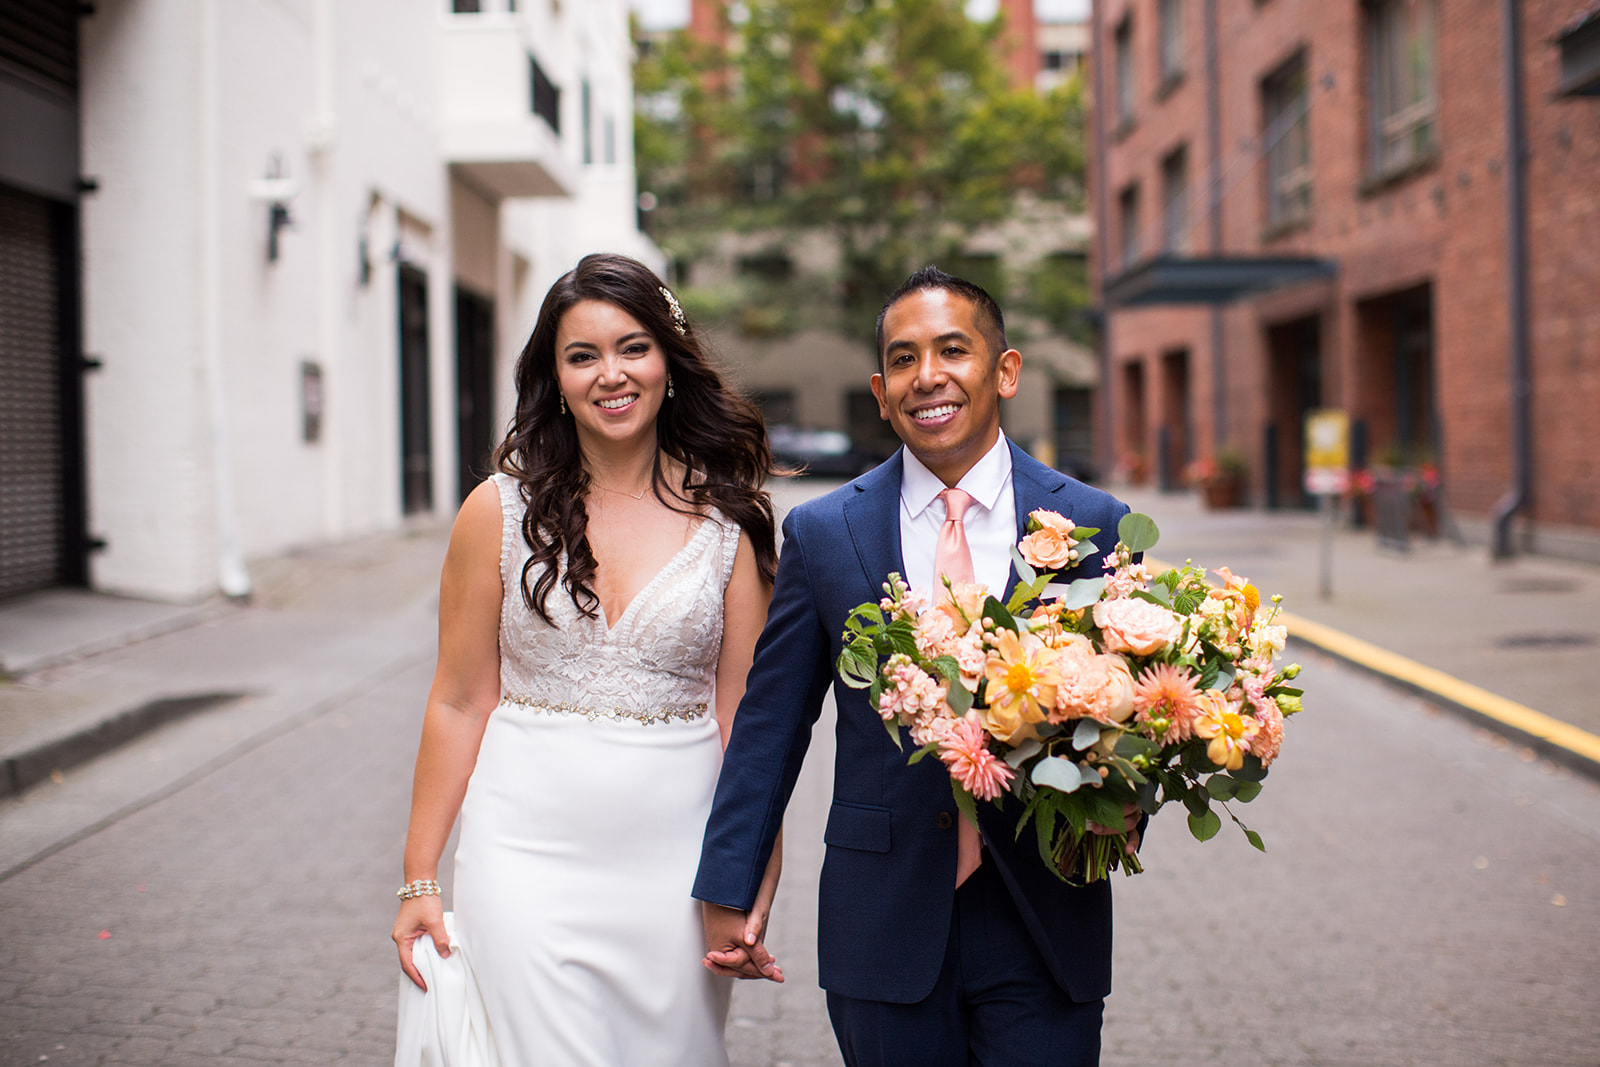 Bride and groom posing with a coral, peach and grey bridal bouquet using local dahlias for an Autumn Wedding at Chihuly Gardens and Glass | Flora Nova Design